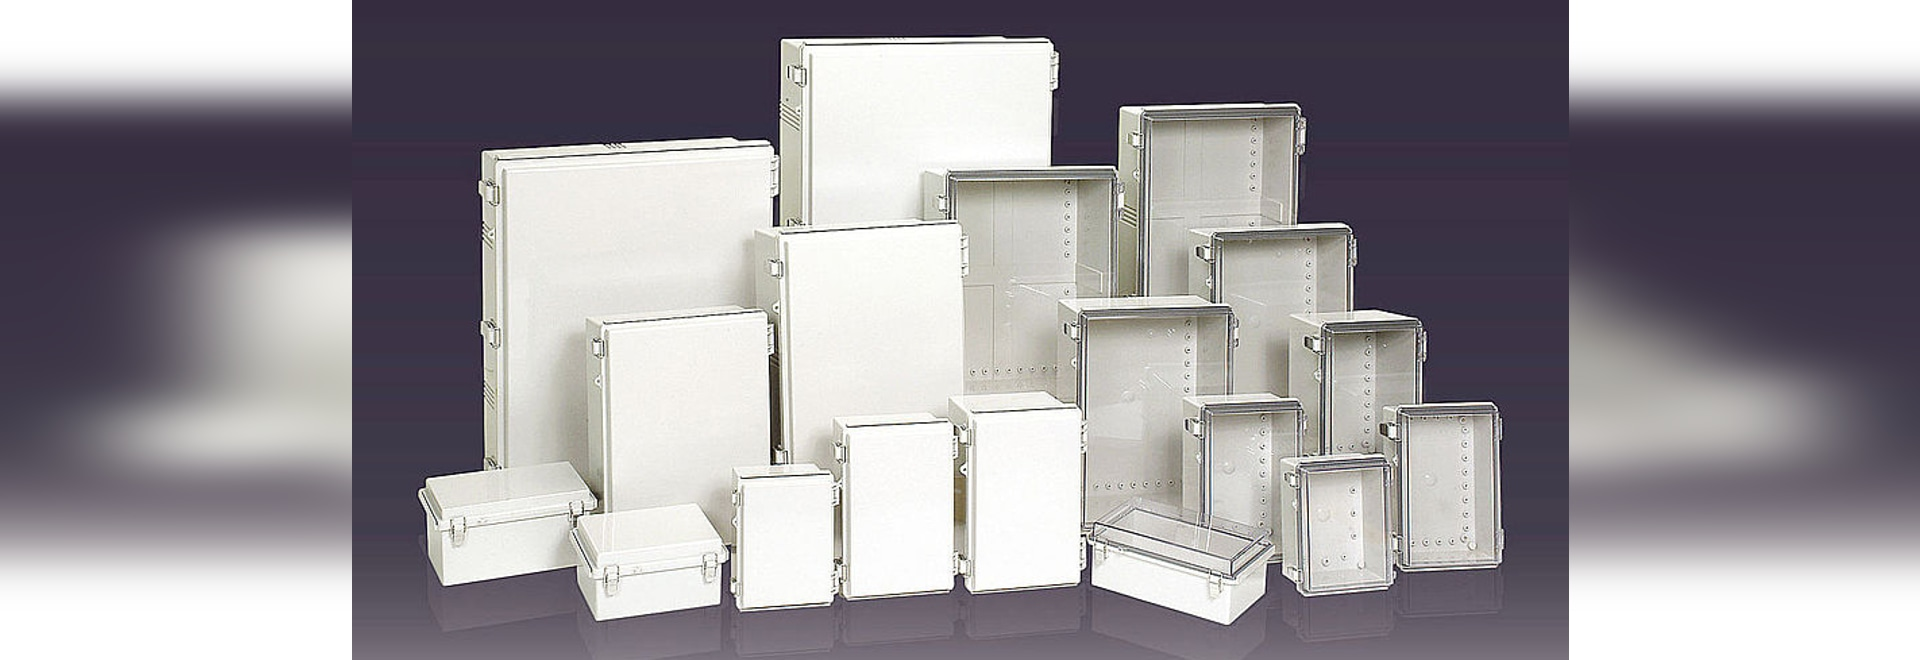 IP66/67 Plastic enclosure with molded hinge and latch